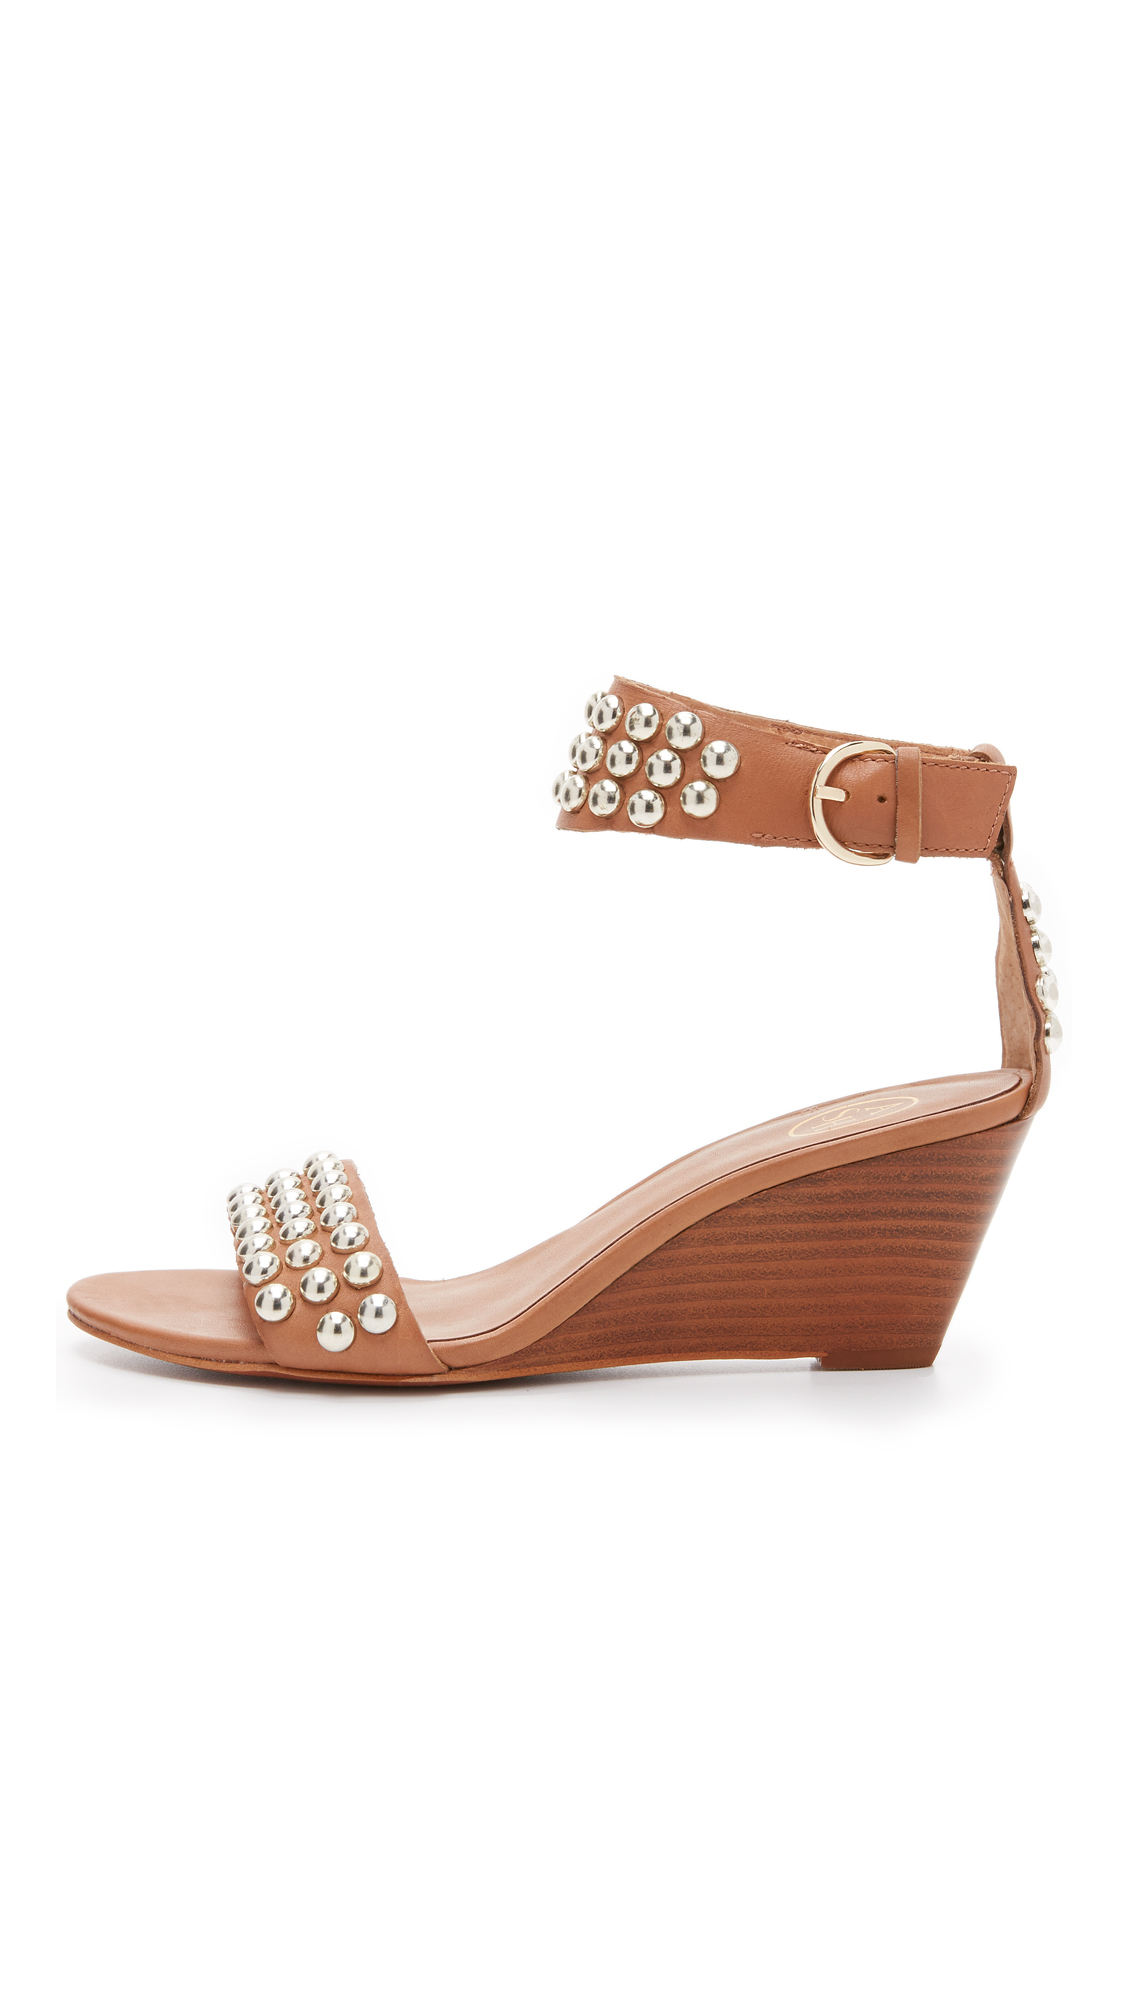 c4d9fd9f7a02 Lyst - Ash Dune Wedge Sandals in Brown